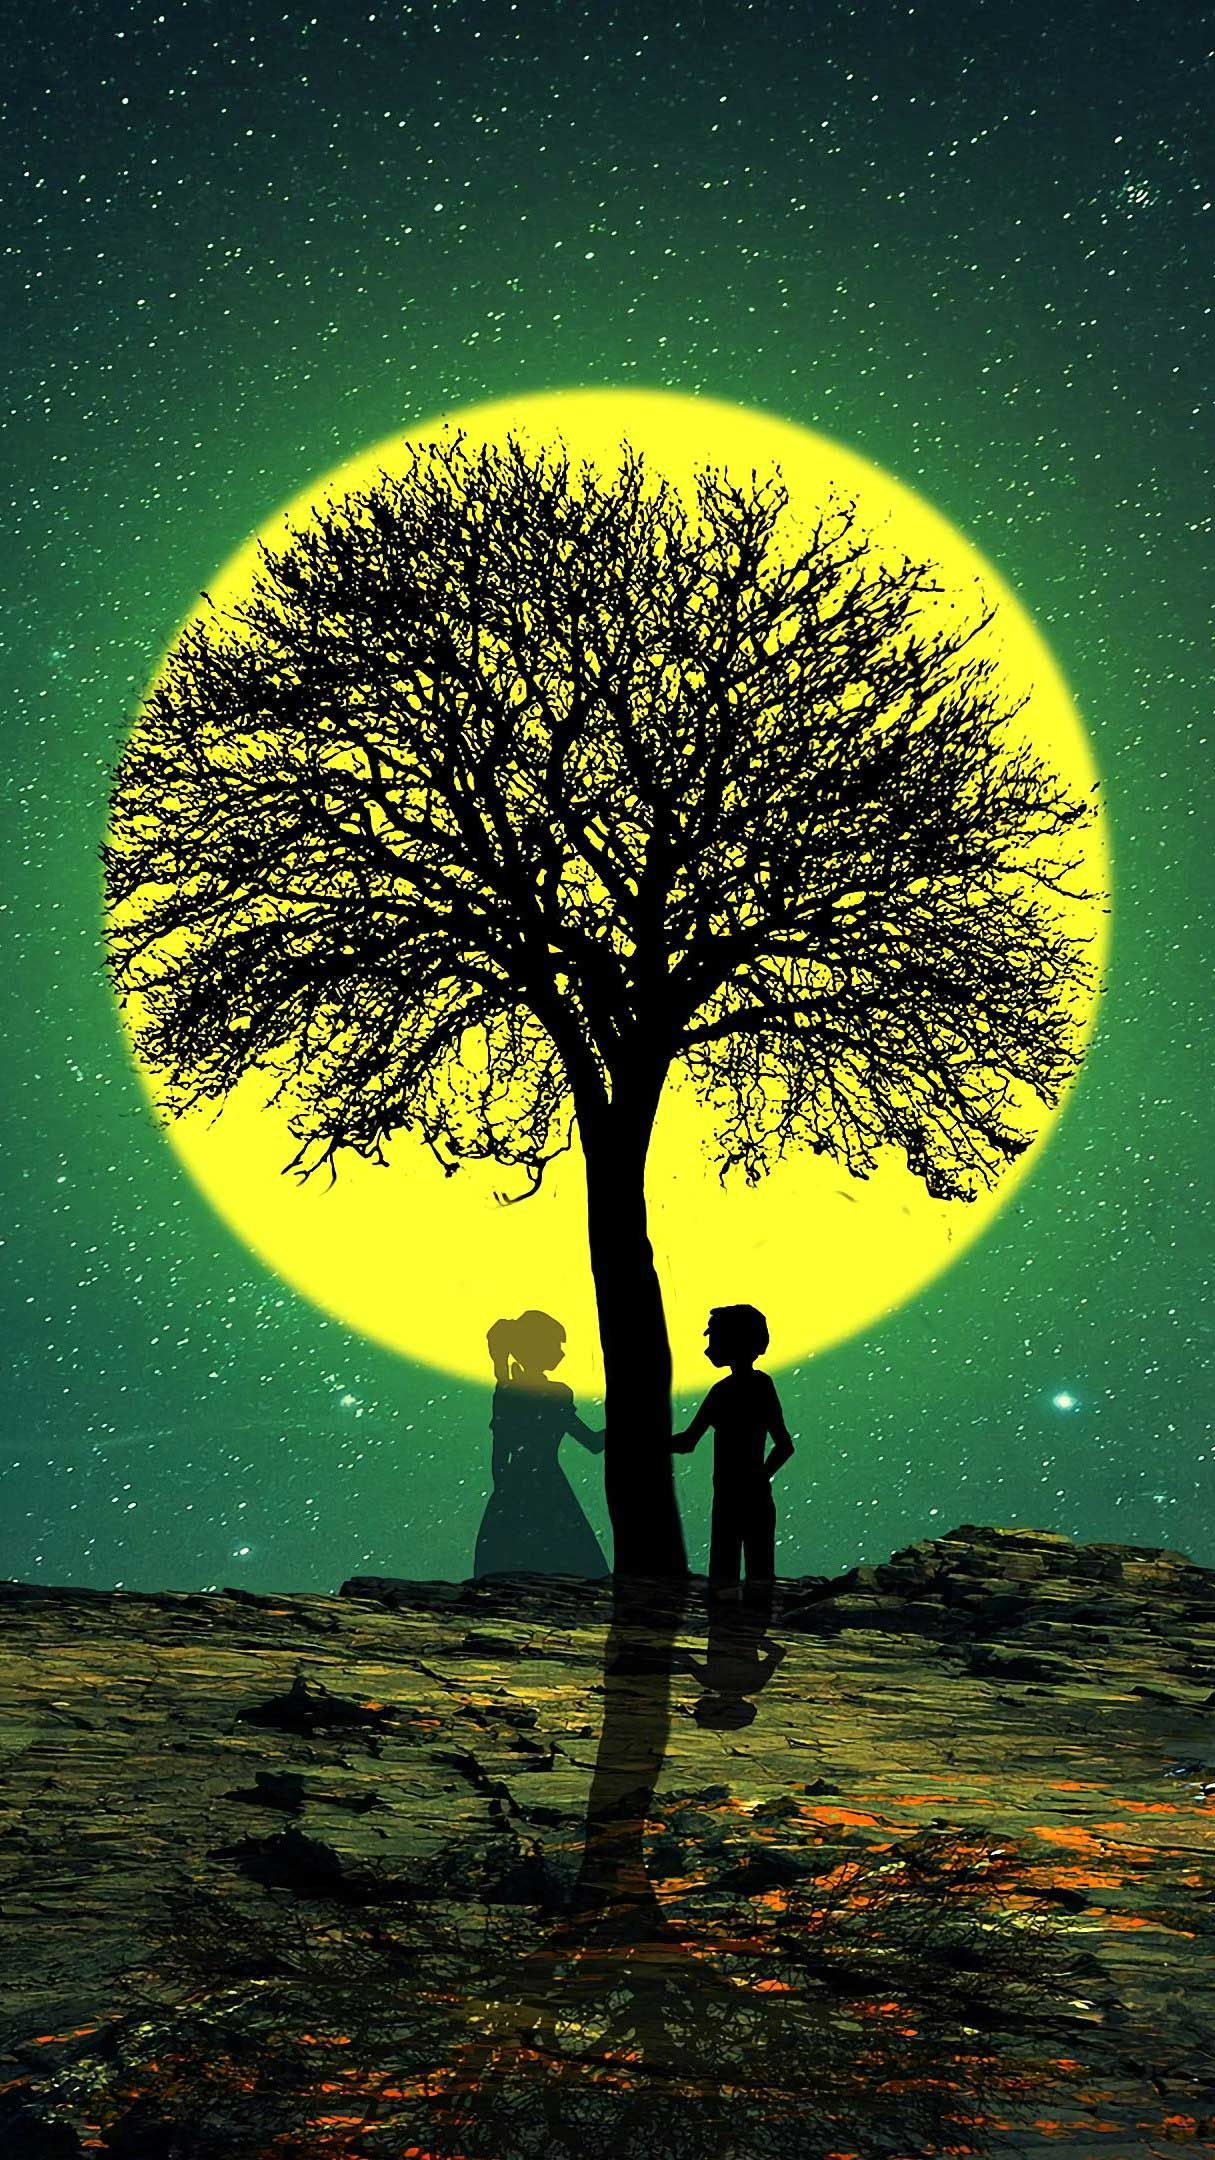 Silhouettes Love Tree Iphone Wallpapers Hd Best Nature Wallpapers Cool Backgrounds Love Wallpaper